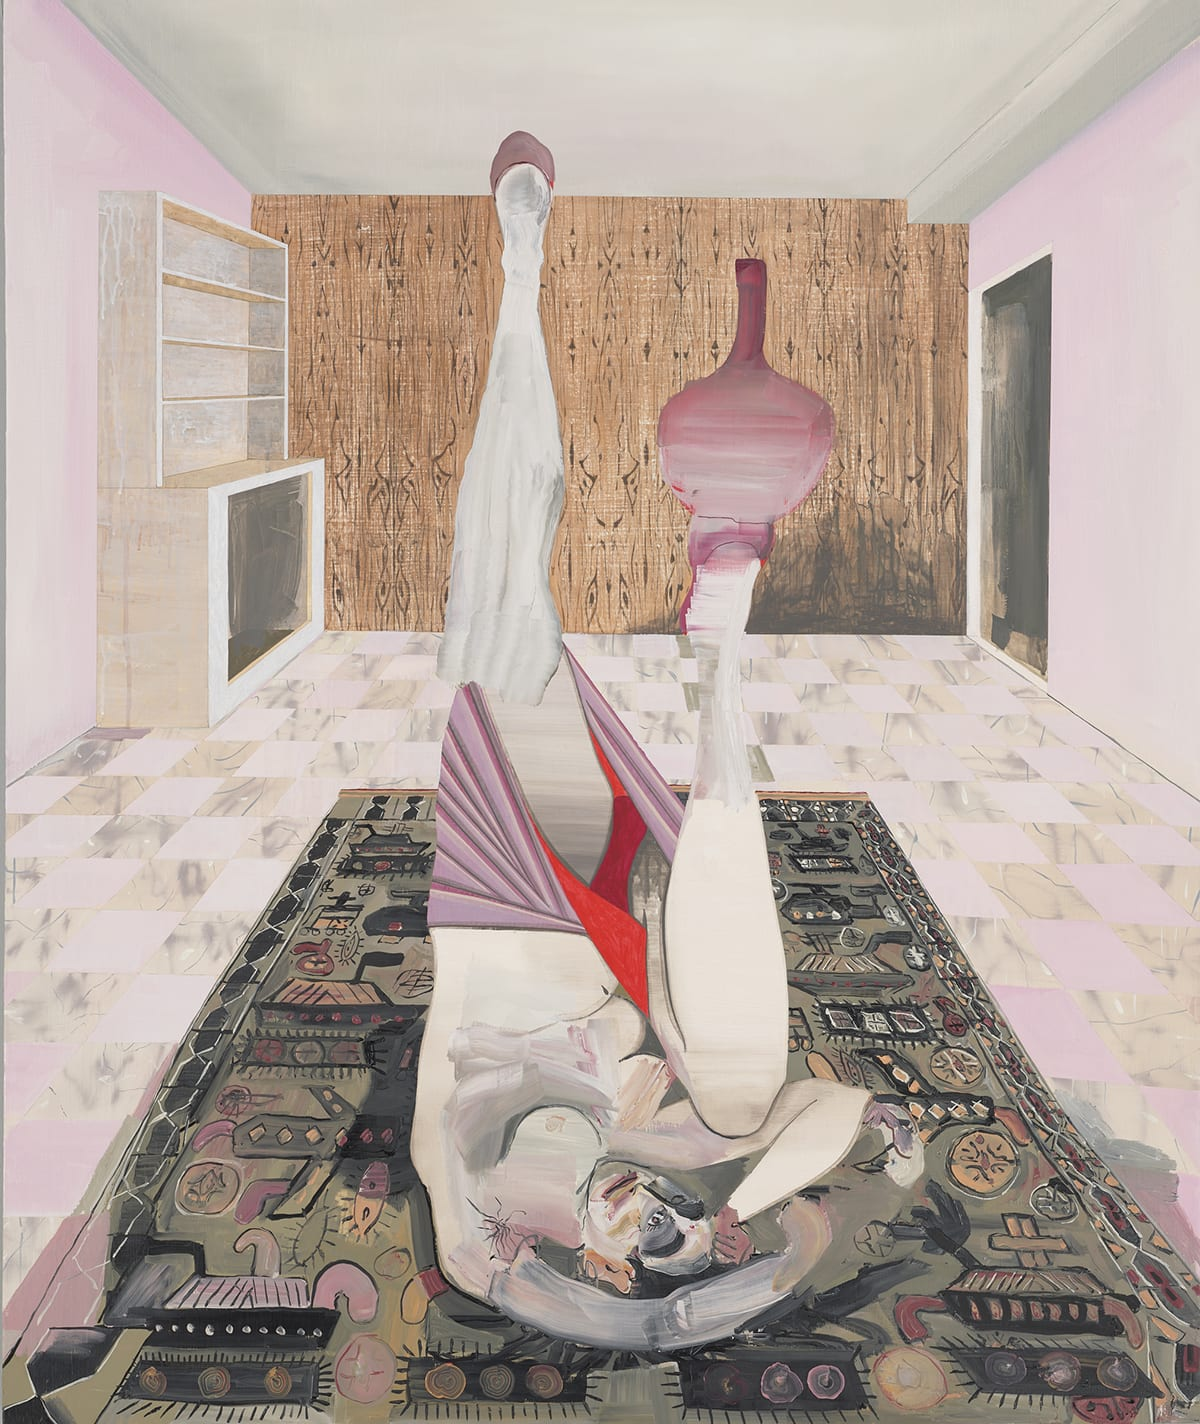 Still Life on War Rug, Elizabeth Malaska, 50 ¼ x 40 ¼ inches, oil, Flashe, charcoal, and graphite on canvas. A vertical rectangular painting of a female figure lying on a rug with her legs raised over her head, balancing a vase on one foot with her arms wrapped around her head. The figure is positioned so the viewer sees her from the front and upside down with her head closest to the bottom of the painting. The leg at left is raised straight into the air and the other is bent with her knee forward, towards the viewer. She balances a long necked, purple vase on this foot. Her arms are positioned over her head and lay on the rug. She is nude from the waist up and wears a light purple skirt with a red lining and red undergarments. Her skin color is creamy white with grey shading. The artist varies the style of brushwork on the figure from smooth and blended to thickly applied with broad strokes. Her face has dark heavy brows, a wide flat mouth, and one undefined eye. She lies on intricately patterned rug with various geometric shapes in taupe, gray, peach, and black. The figure is in a room with a checkerboard tile floor depicted in pale pink and marbled beige, gray, and white. At the rear of the room is a wood panel wall painted in browns with dark lines suggesting wood grain. At right of the wall is a dark doorway and at left is an empty beige bookcase. The walls are pale pink and the ceiling is a grayish beige.